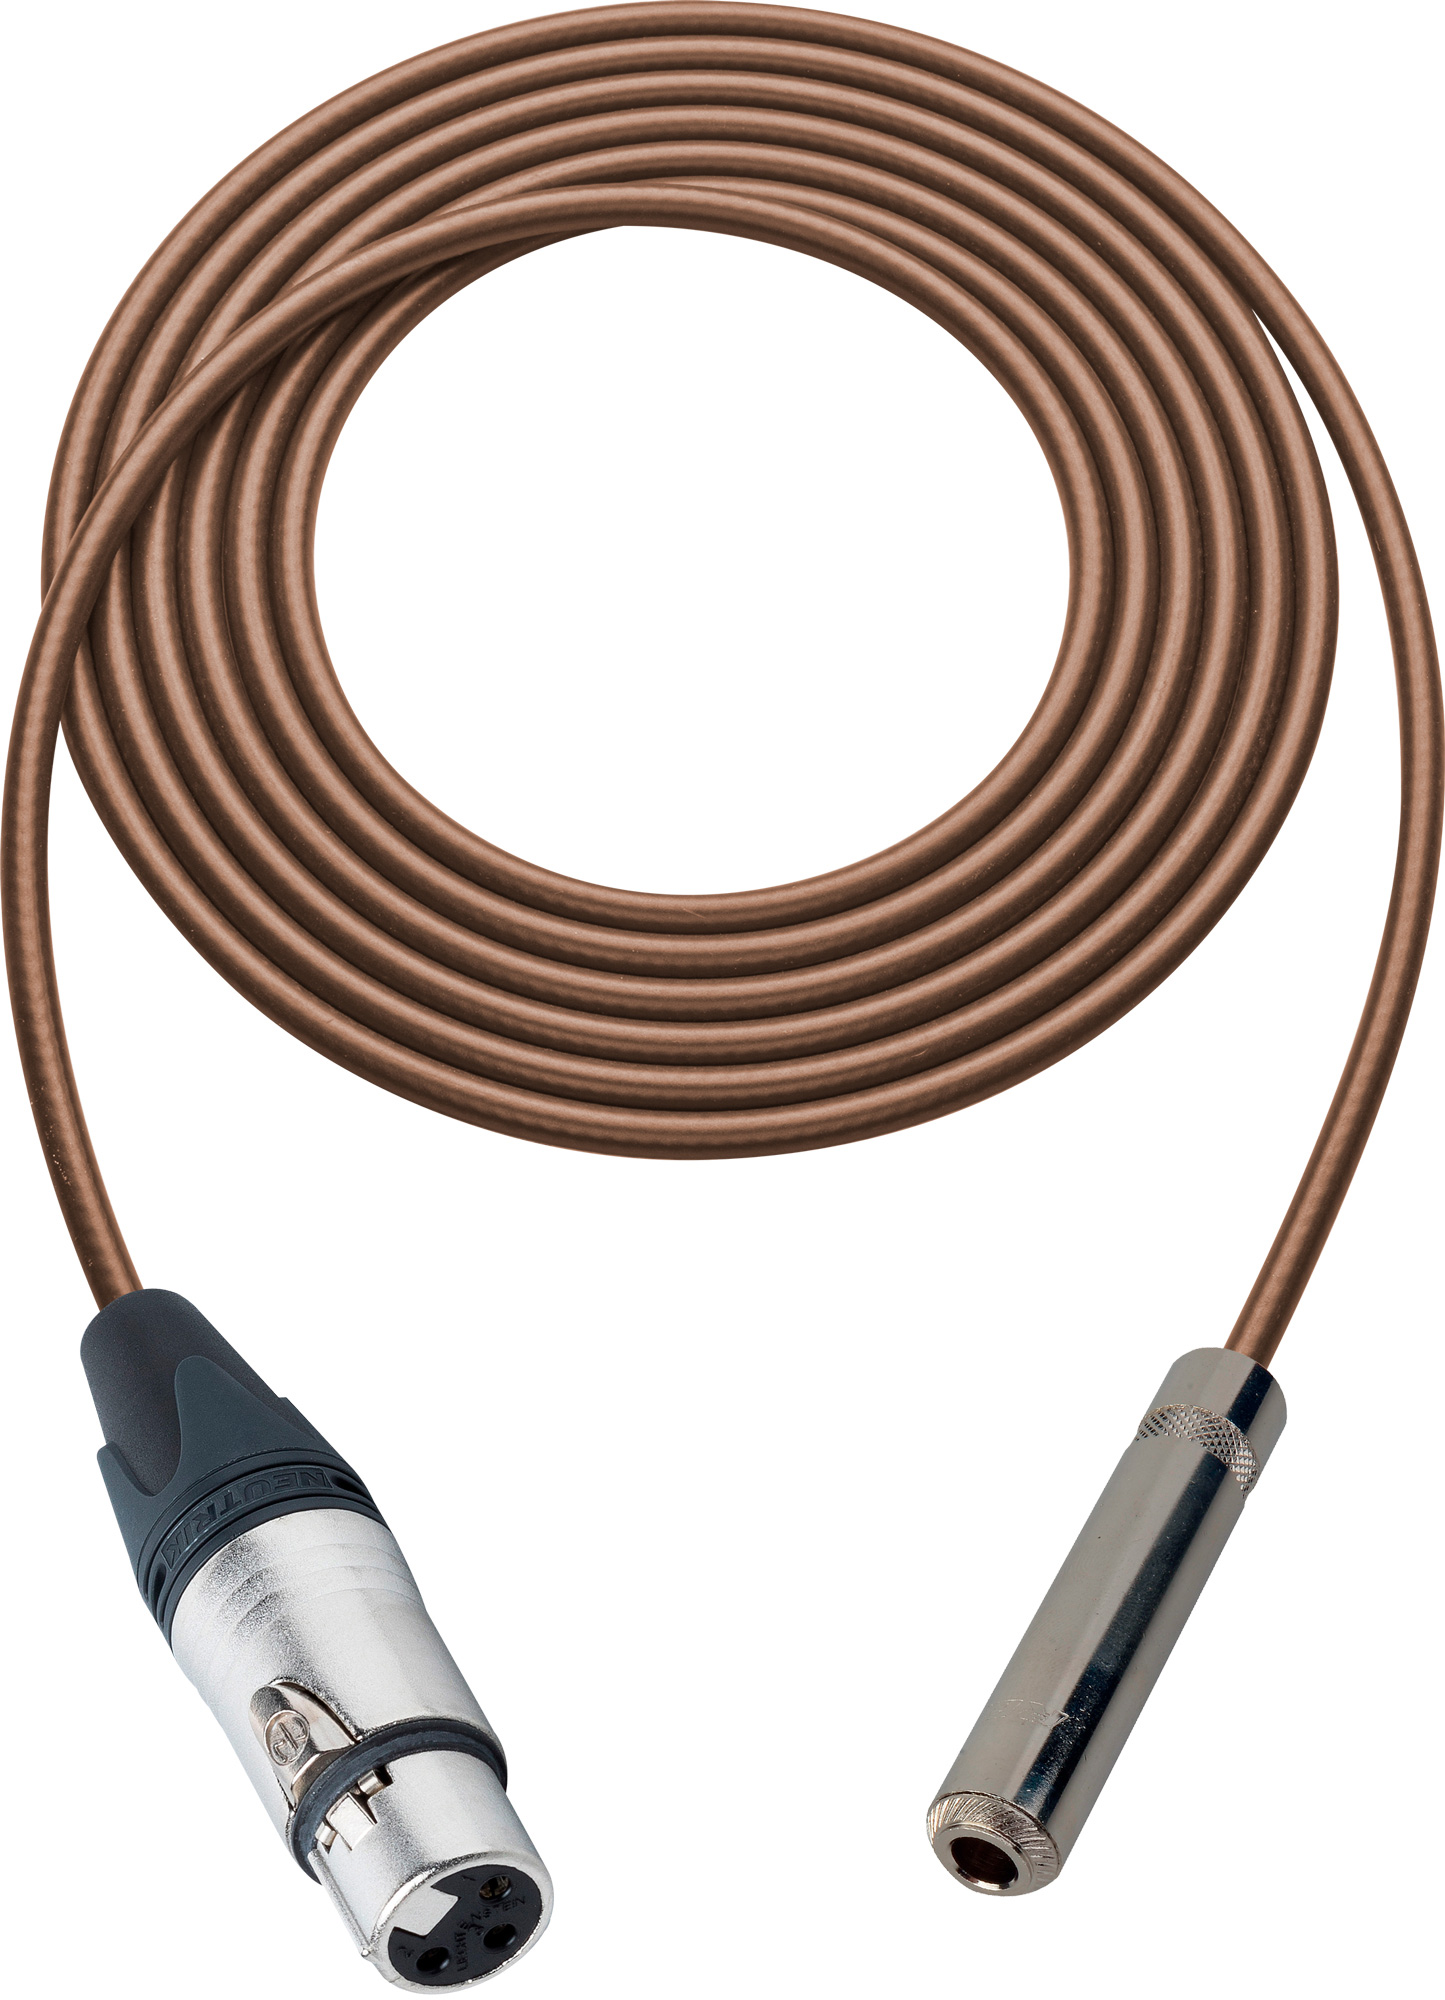 Microphone Cable Wiring Or Star Quad Microphone Cable